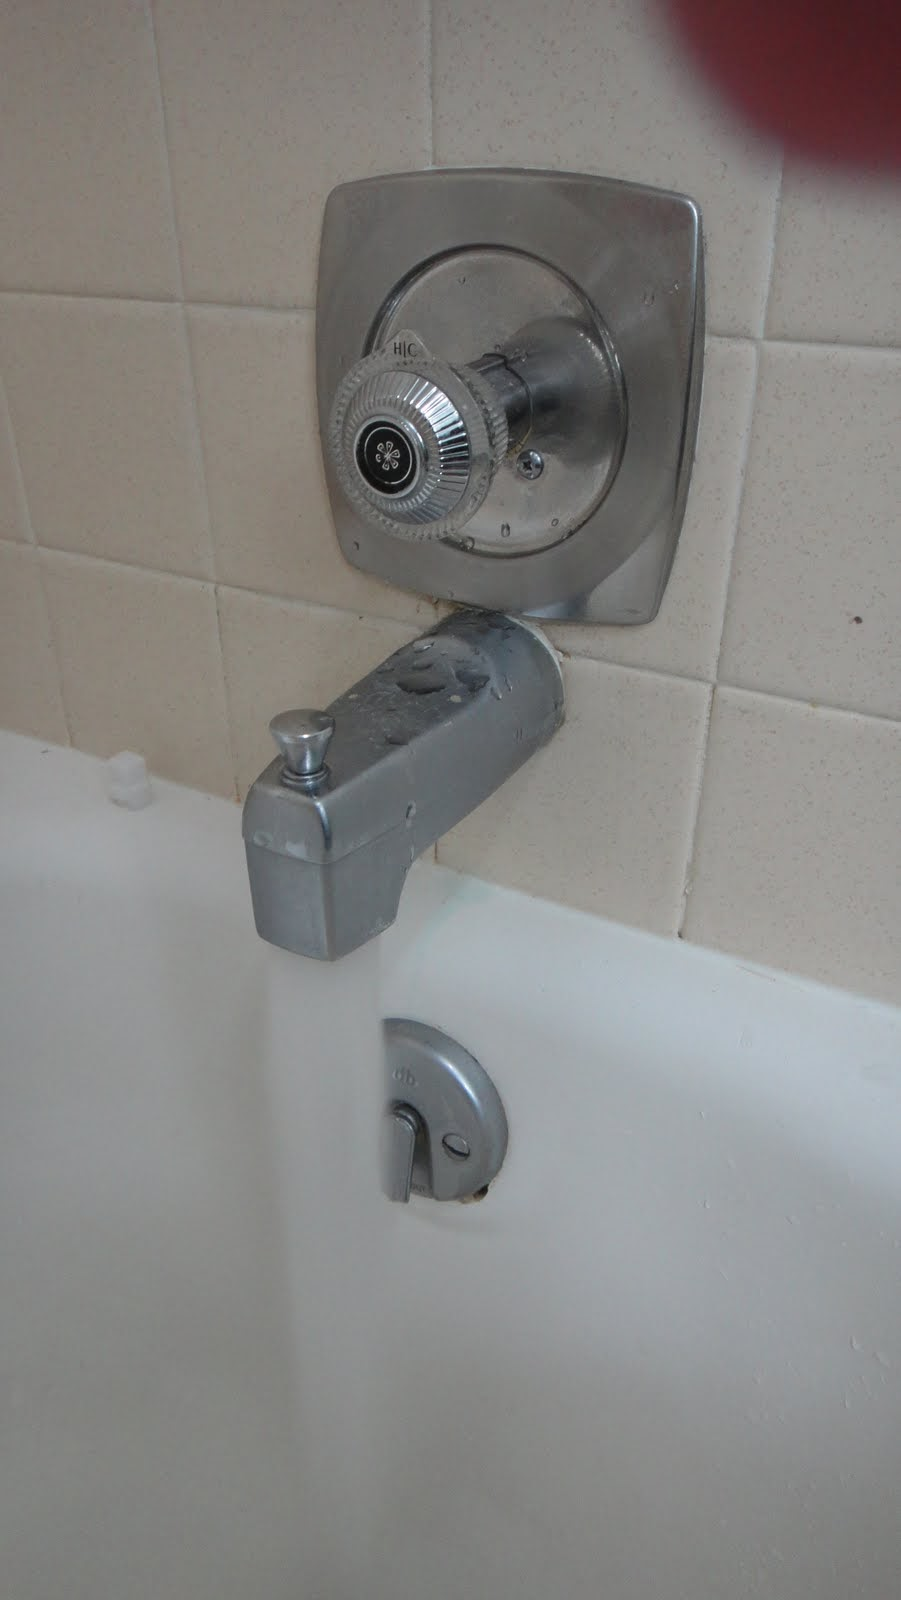 Bathroom Faucet Won't Turn Off the ambitious procrastinator: the water won't turn off and the tub